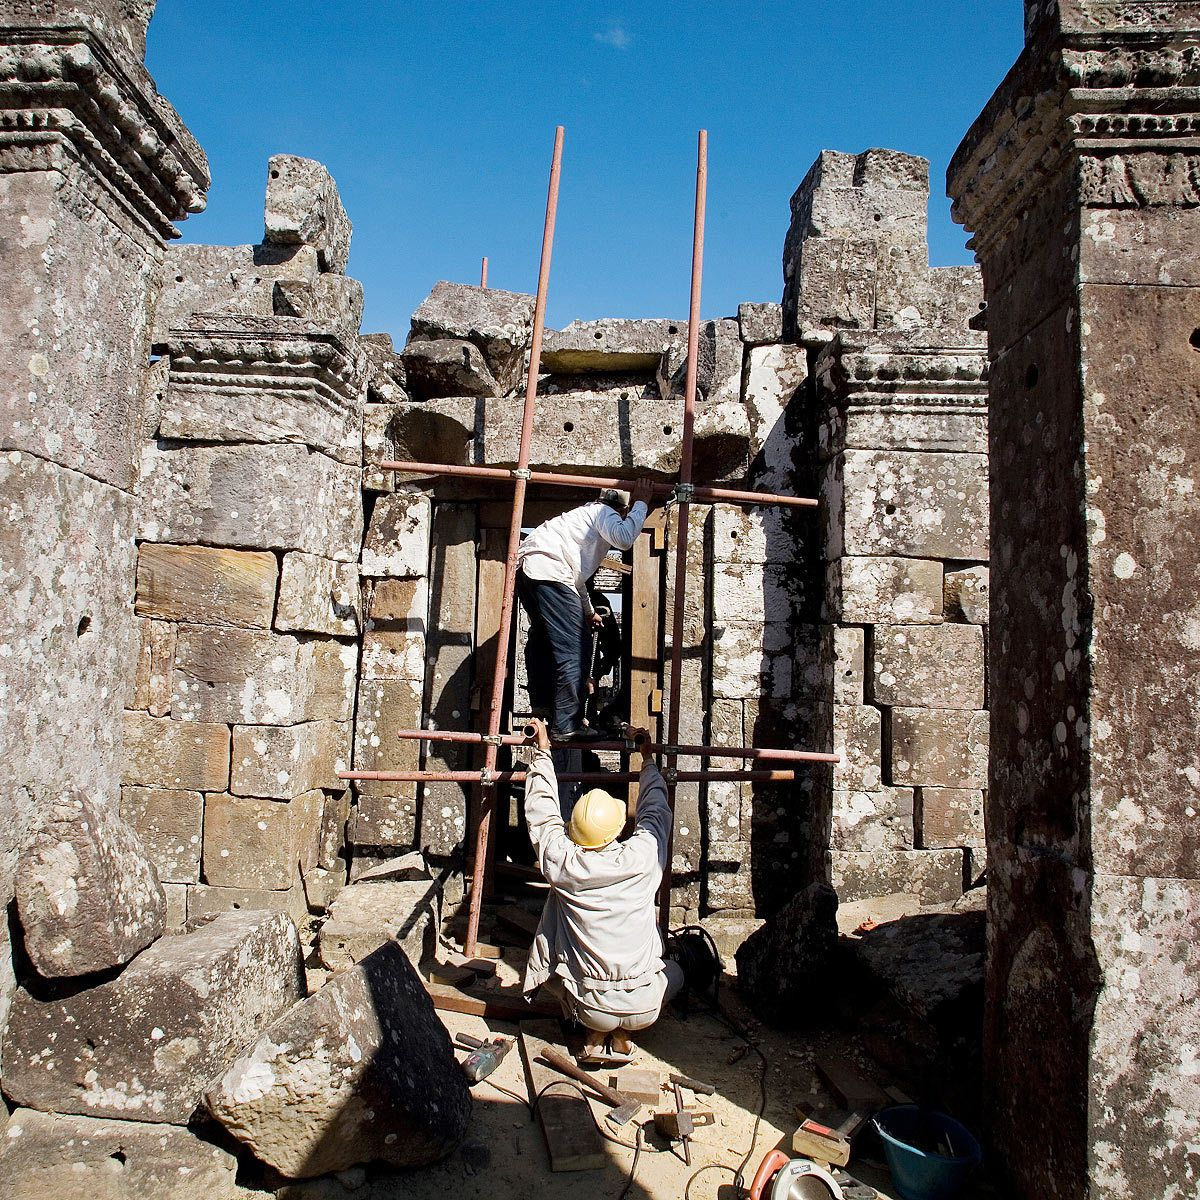 Restoration work at the Temple.